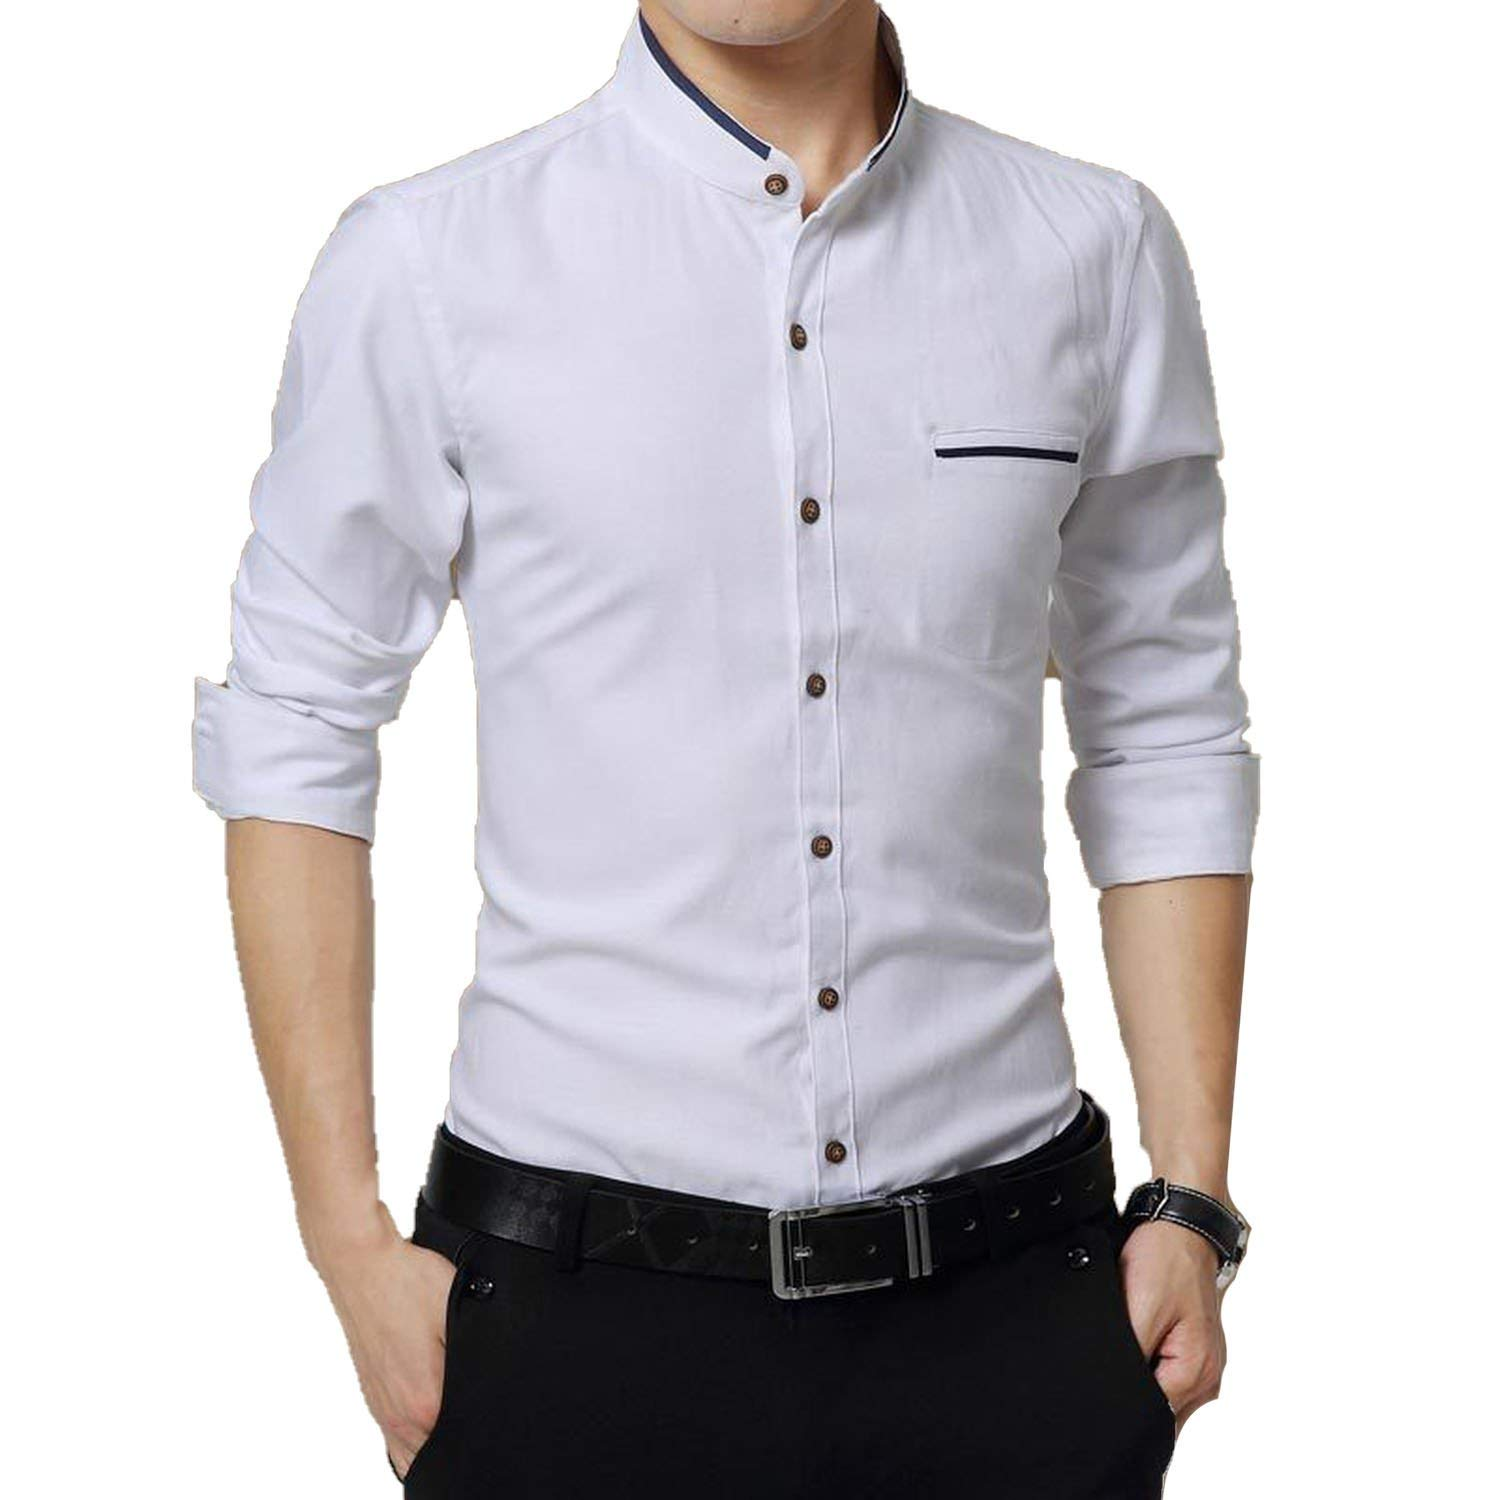 Avory outerwear-jackets Mens Casual Long Sleeve Business Collar Slim fit Shirt